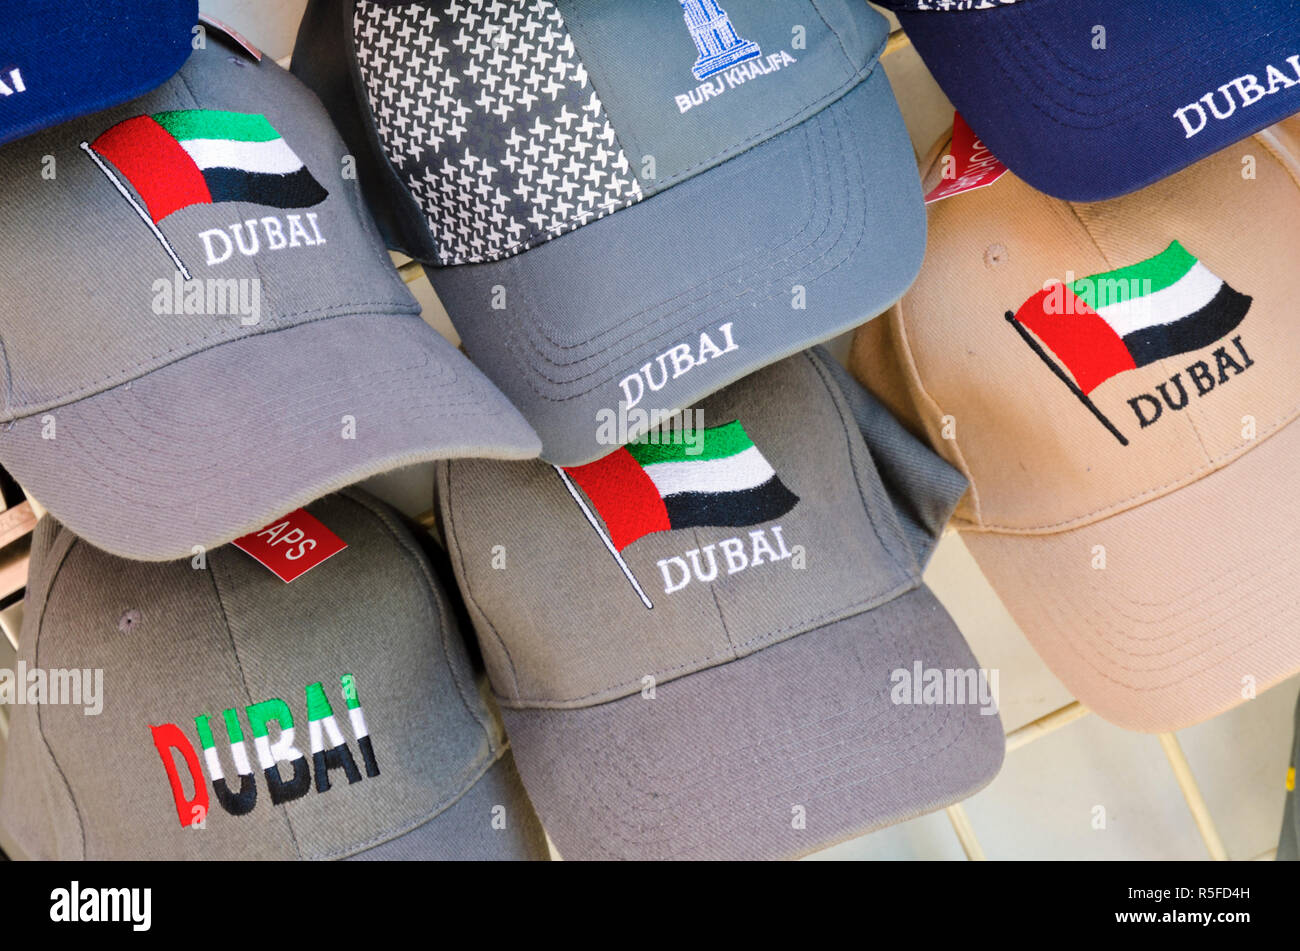 UAE, Dubai, Bur Dubai, Bur Dubai Souq Stock Photo: 227147665 - Alamy